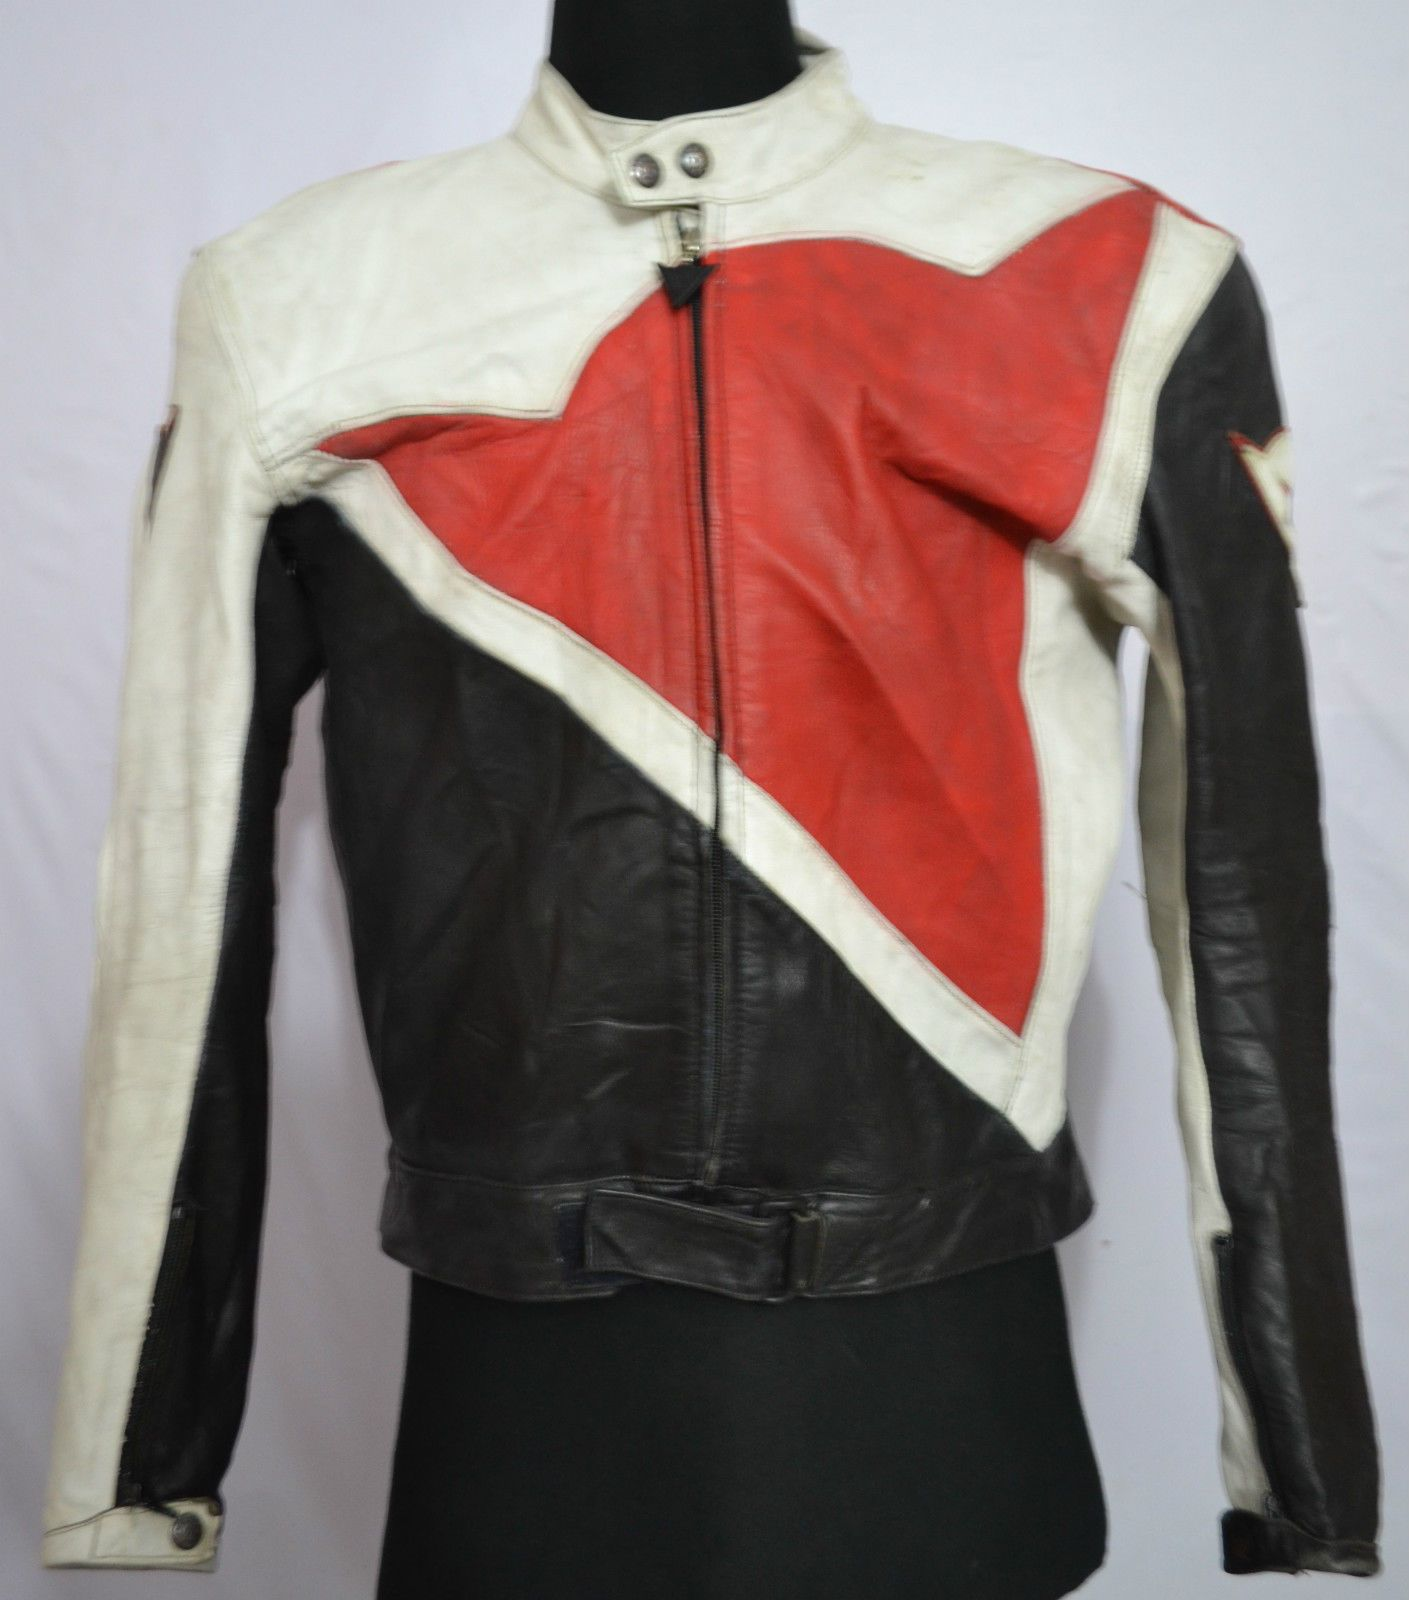 Leather jacket repair toronto - Dainese Men S Racing Sports Motorcycle Leather Jacket Made